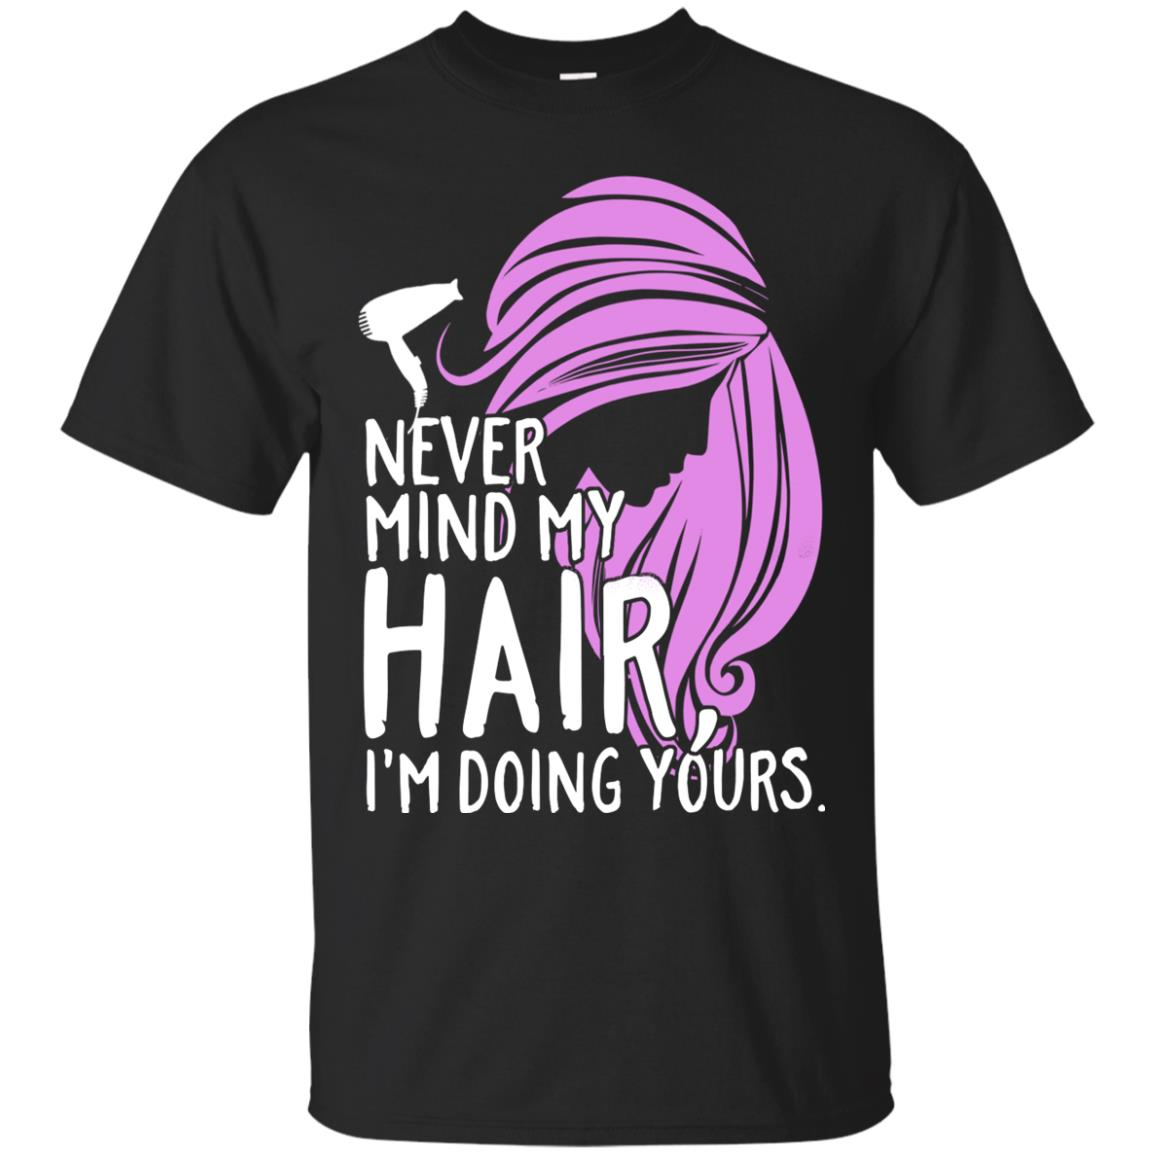 Never Mind My Hair - Apparel - Hairstylist Bestseller